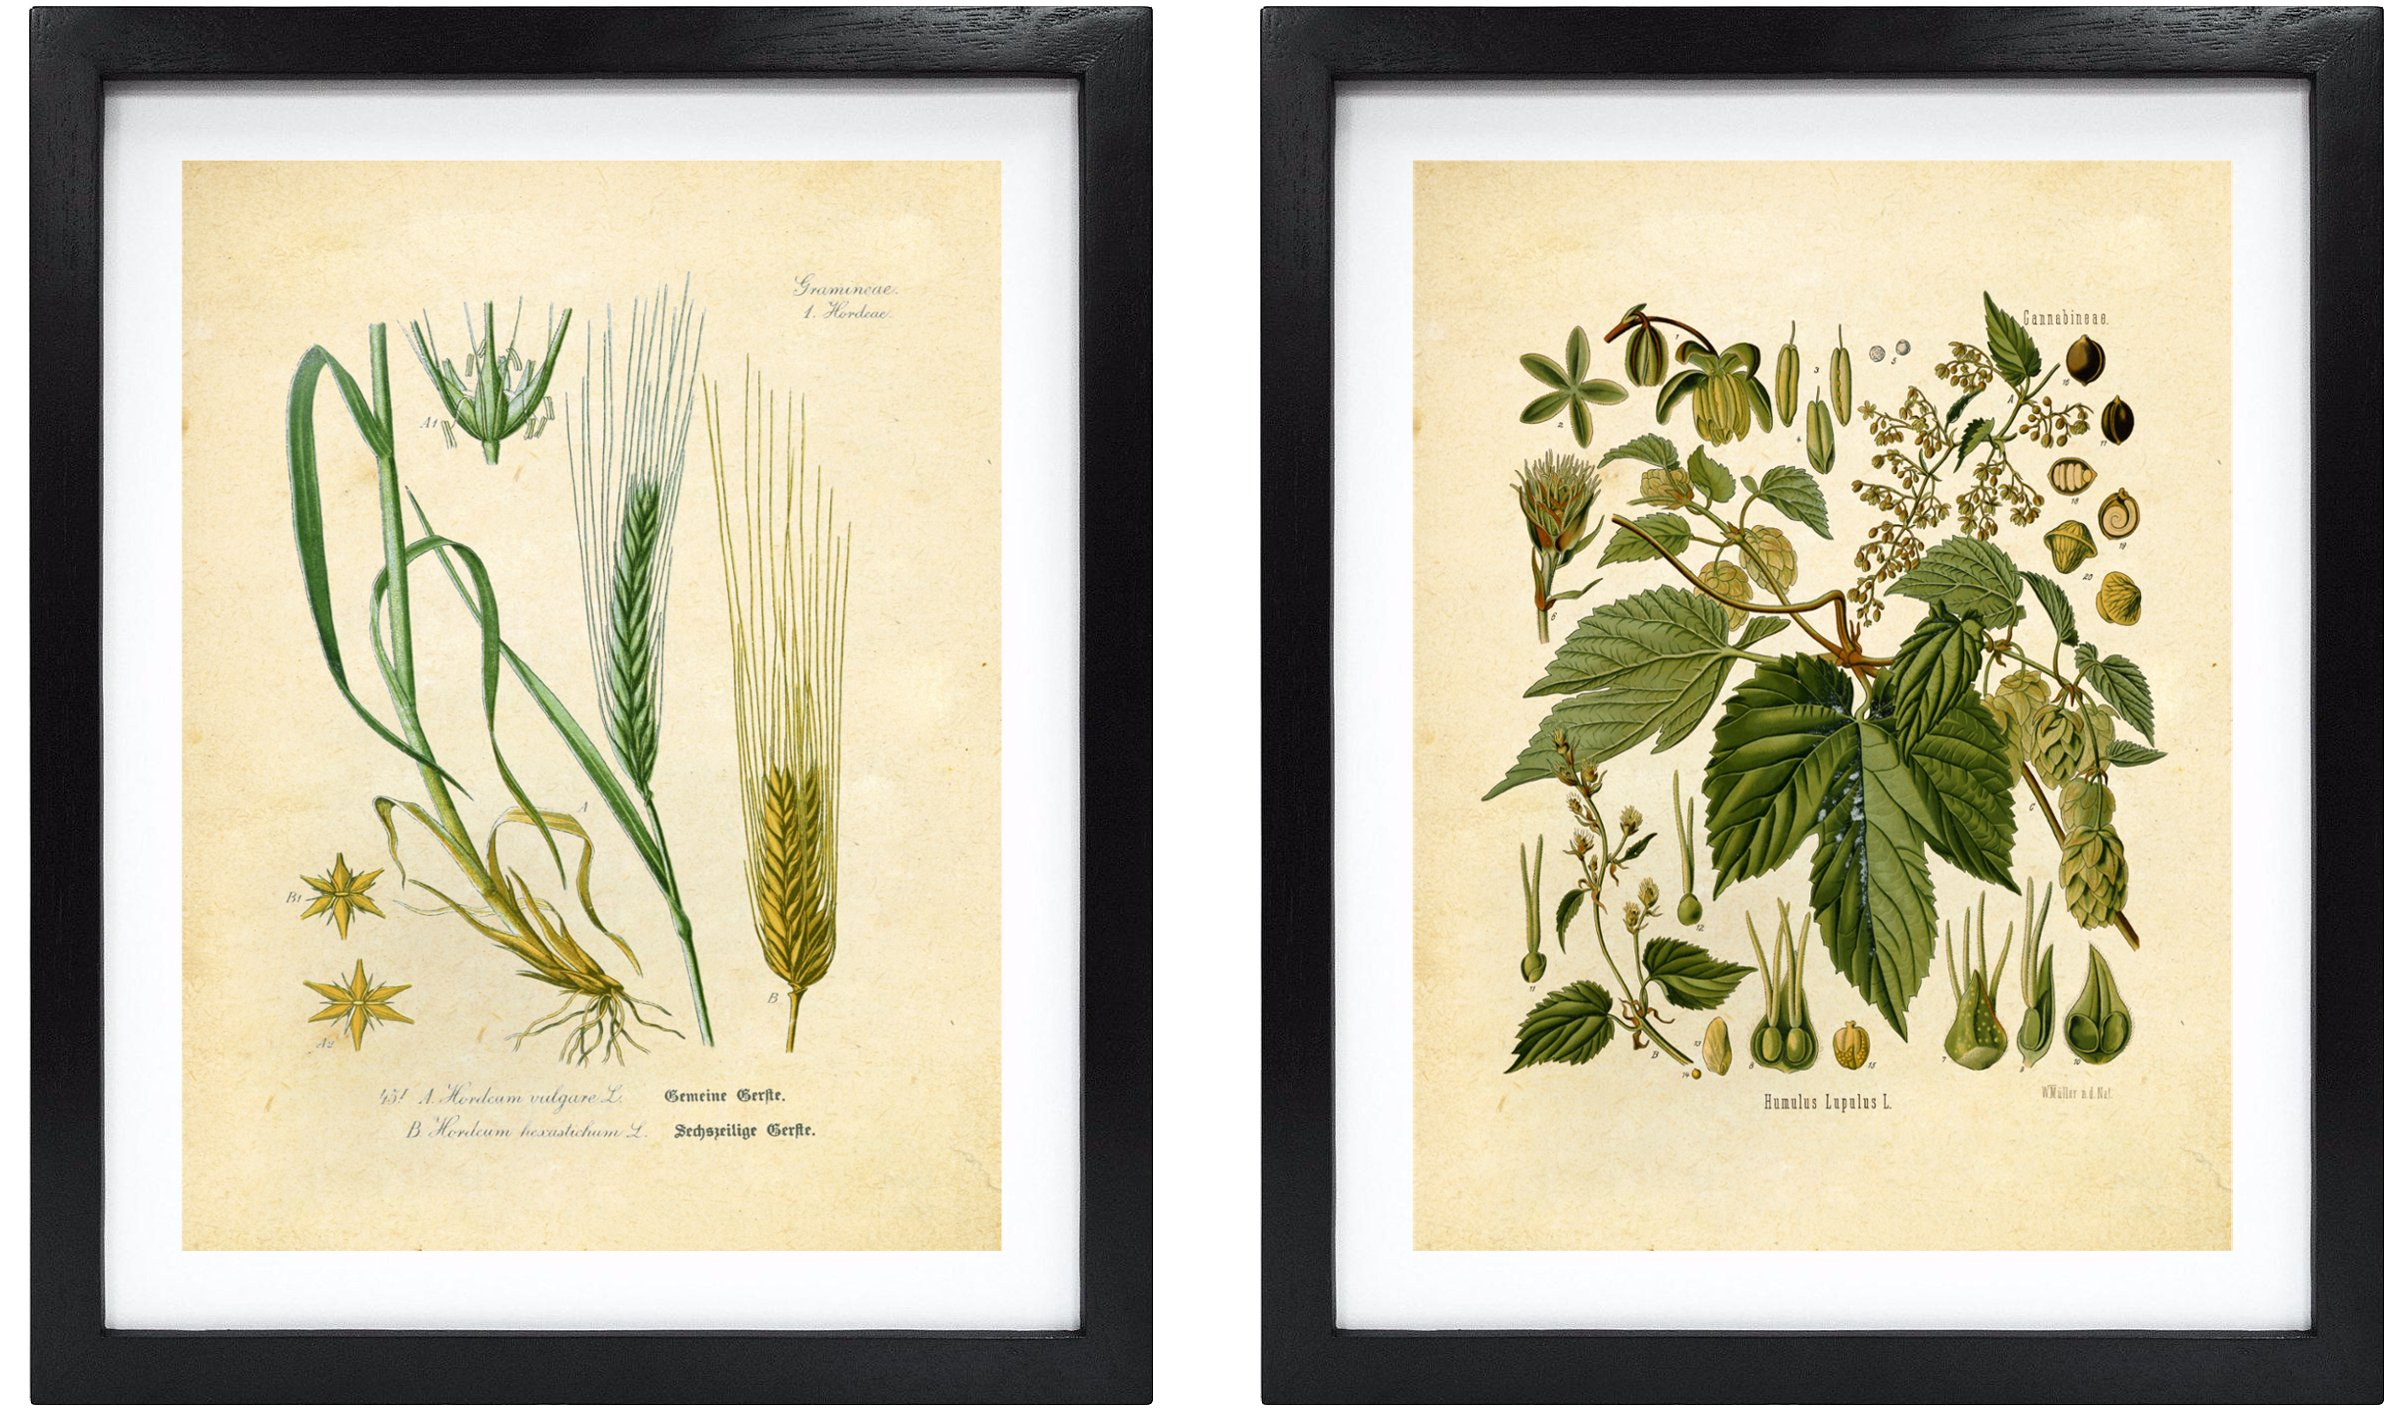 Ink Inc. Craft Beer Art Print – Hops and Barley Vintage Botanical Drawing – 8x10 Matte Unframed – Great Gift for Homebrewers and Beer Enthusiasts by Ink Inc.